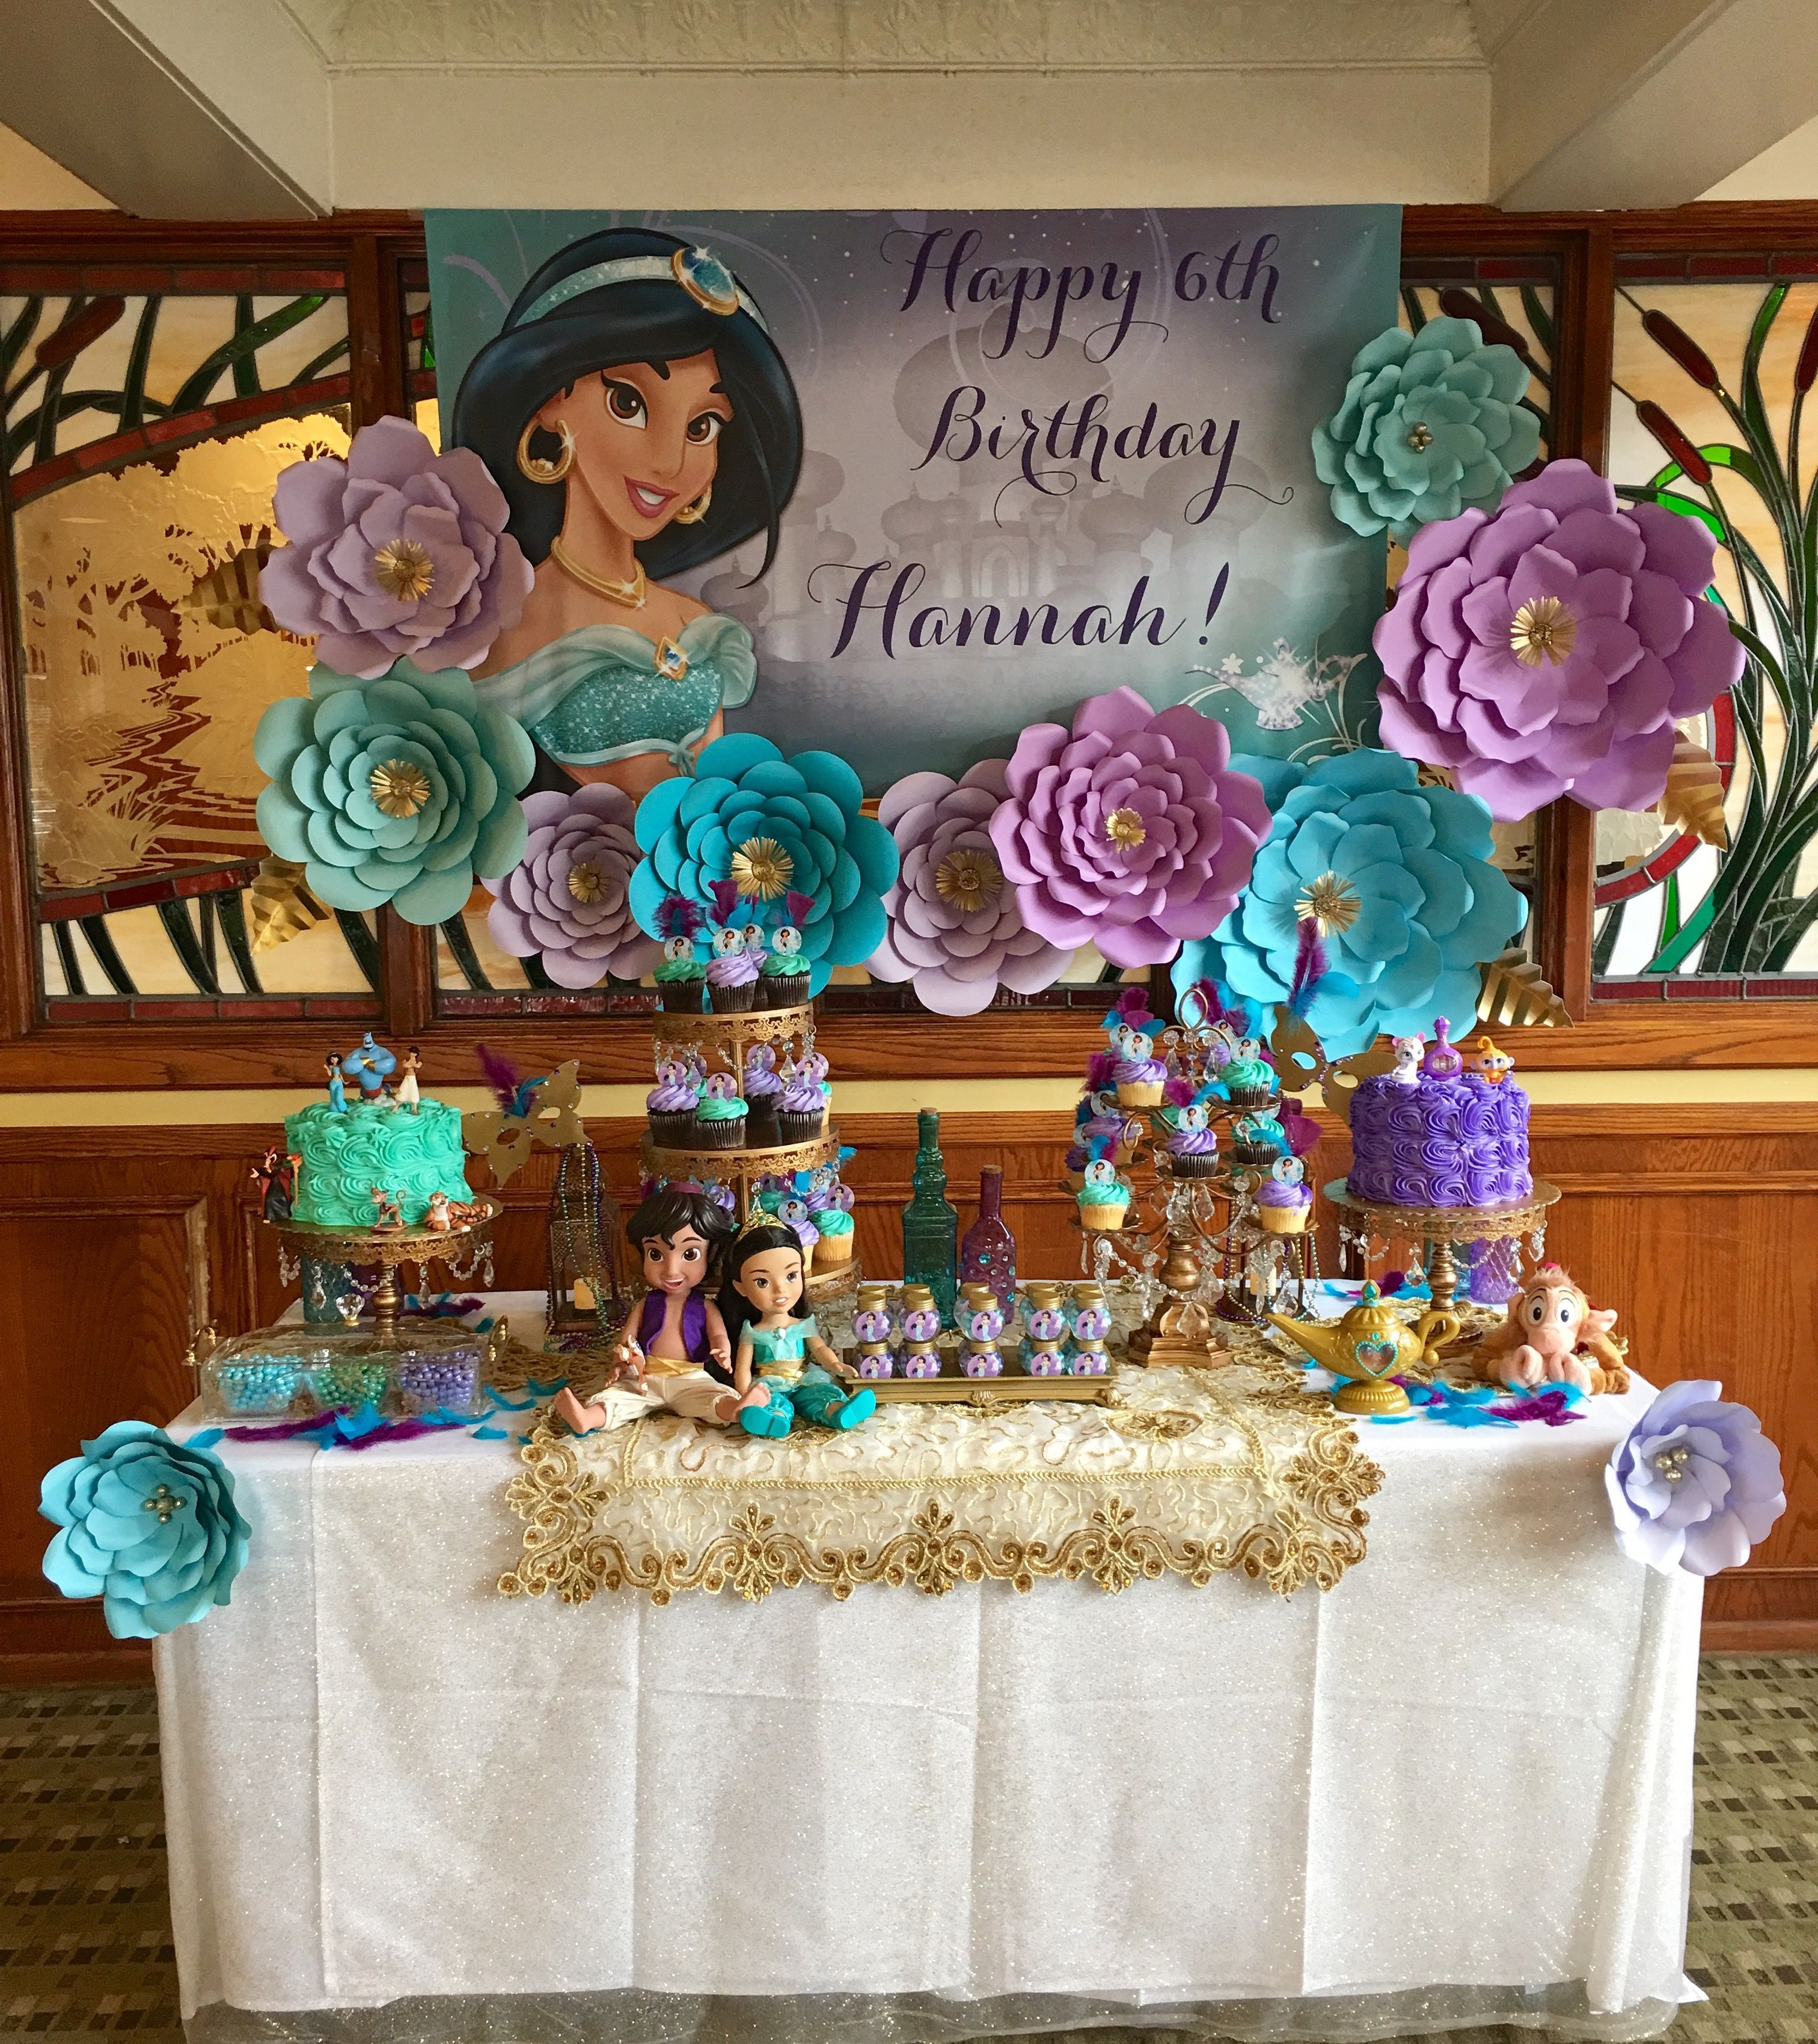 Aladdin inspired birthday party desserts table using